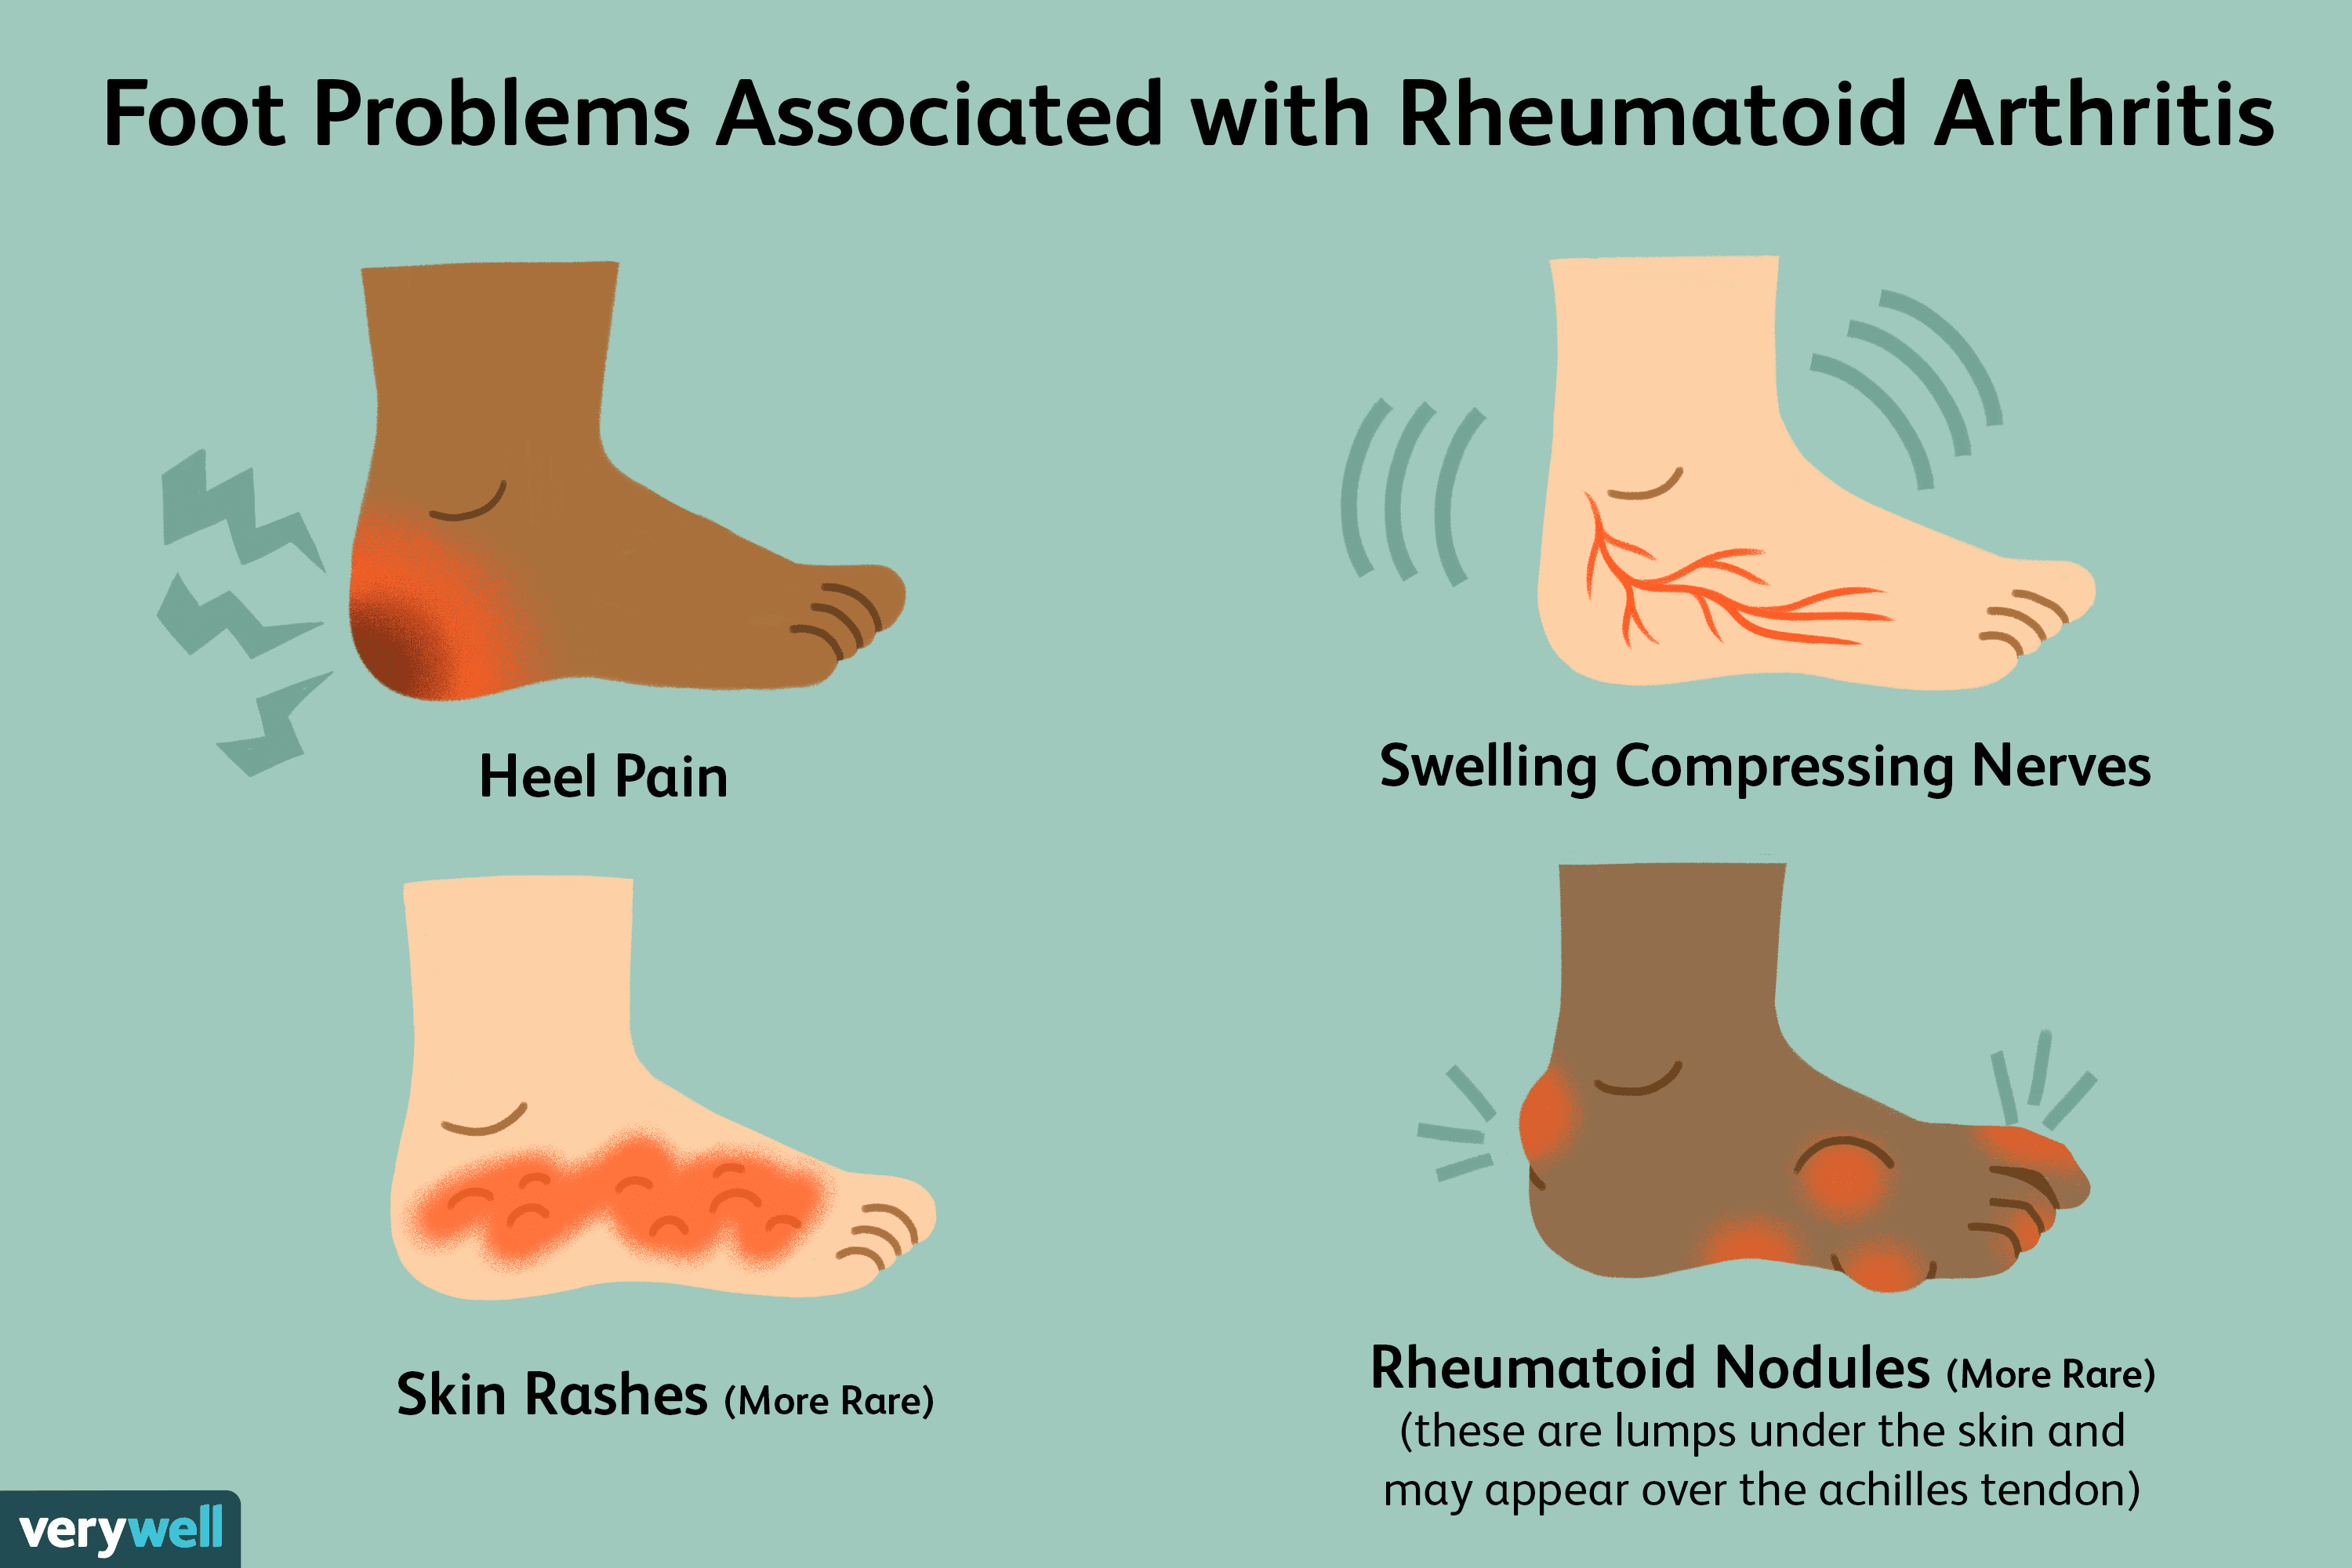 Pain In The Feet As A Symptom Of Rheumatoid Arthritis